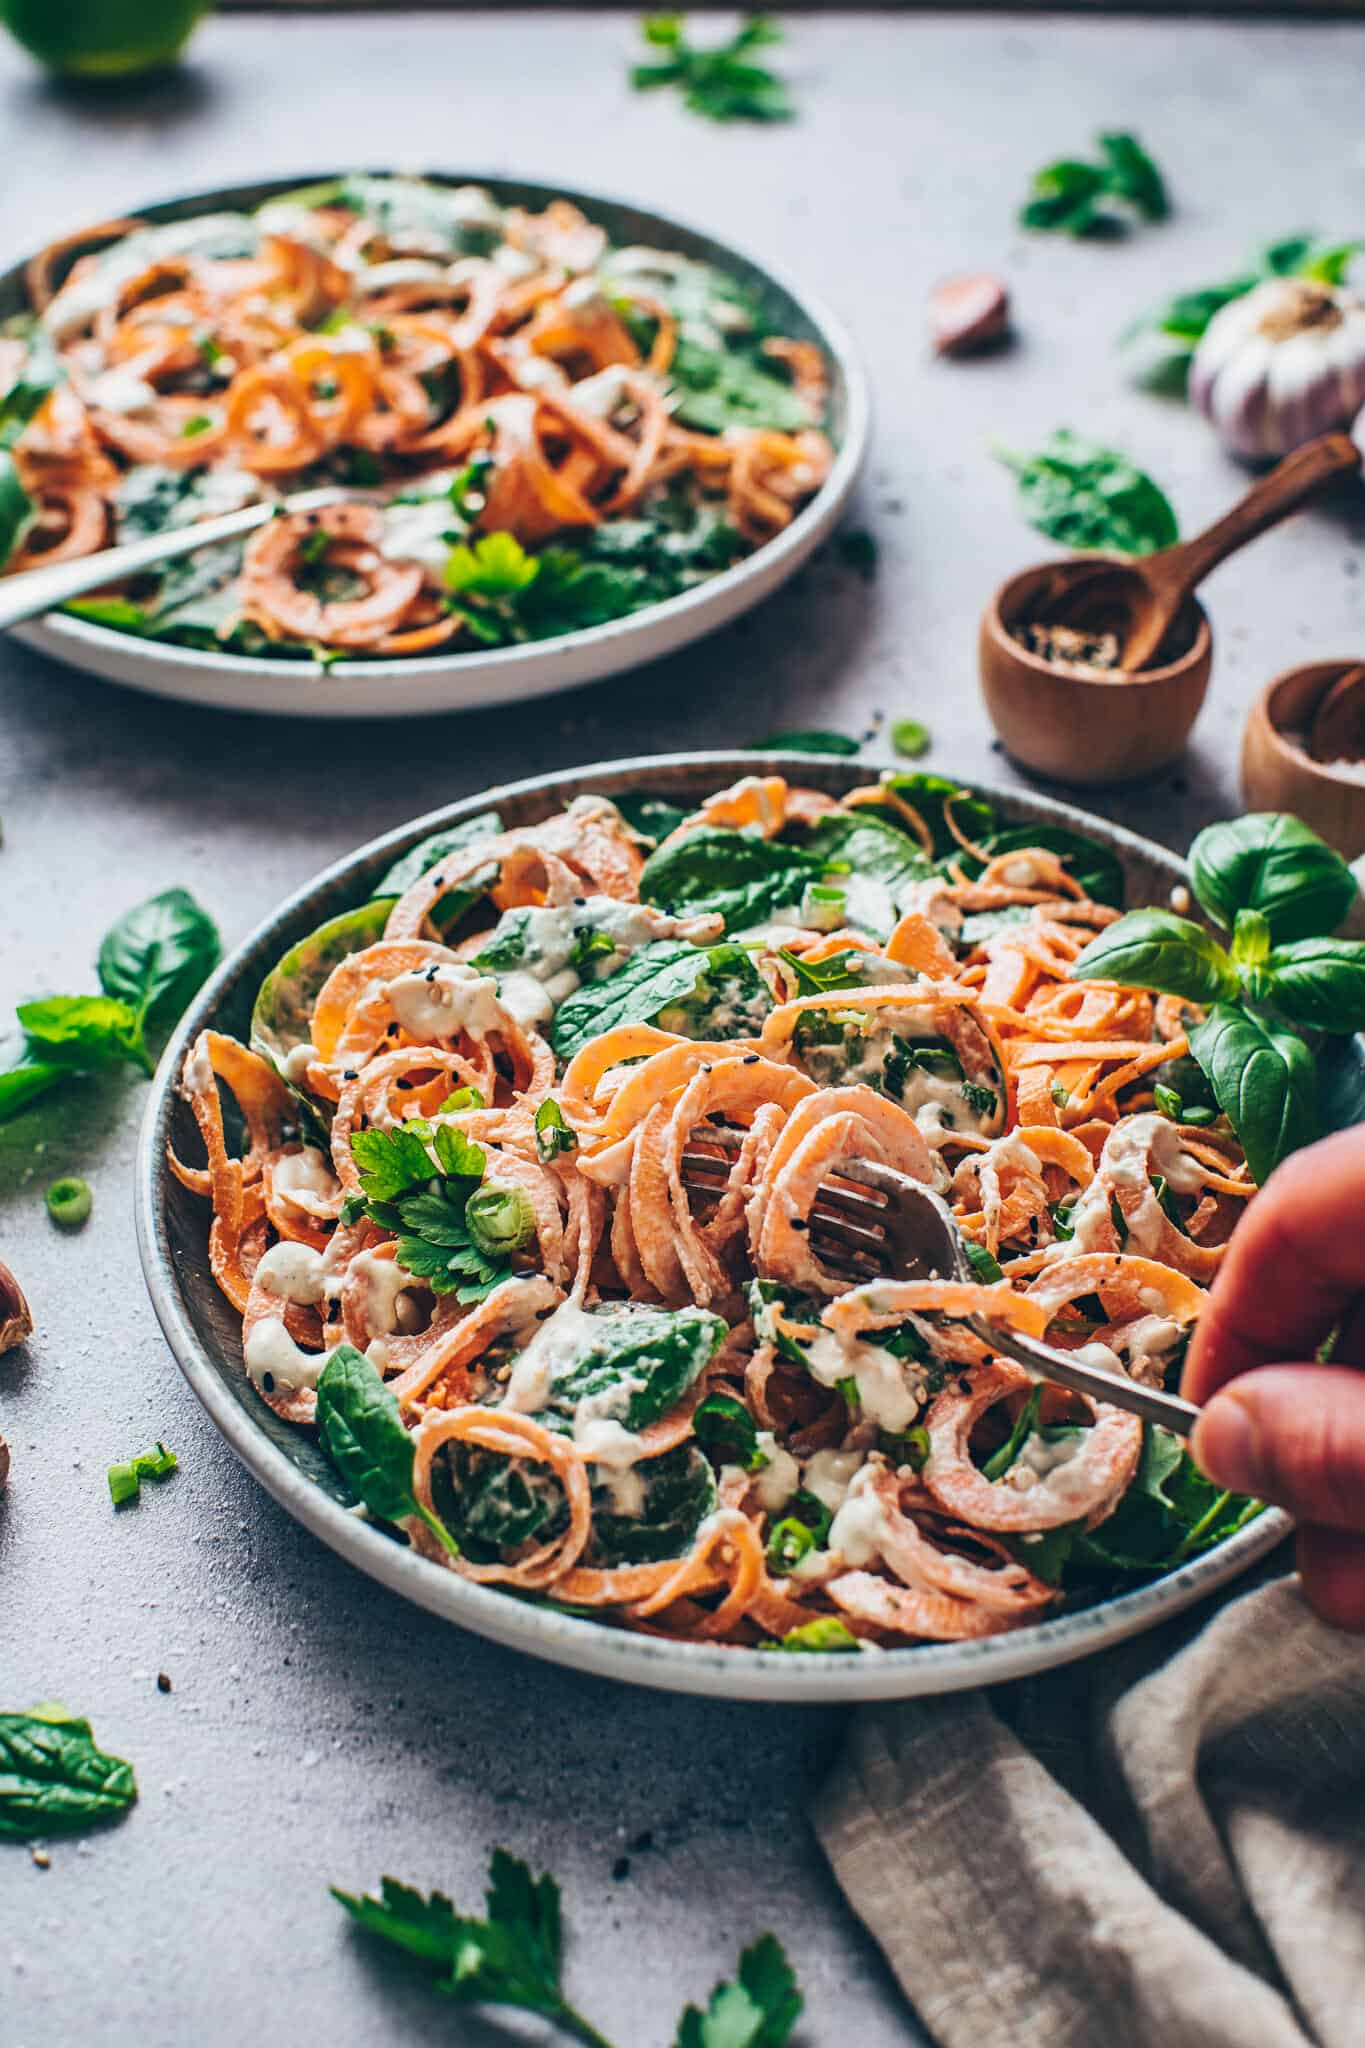 Sweet Potato Noodles with Spinach and creamy Cashew sauce